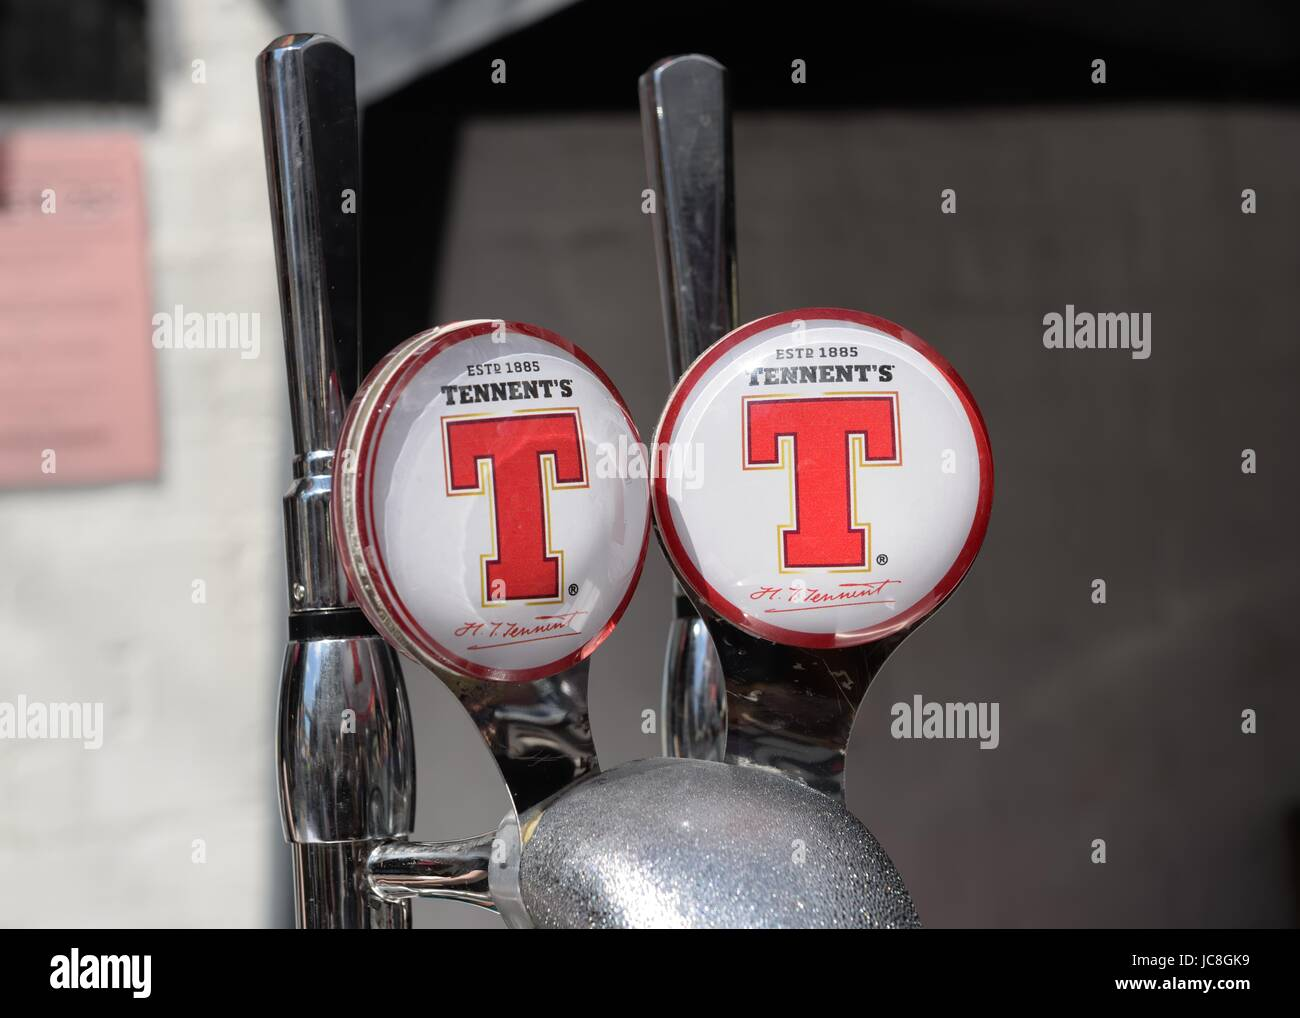 Tennent's lager dispensing taps in Scotland. - Stock Image